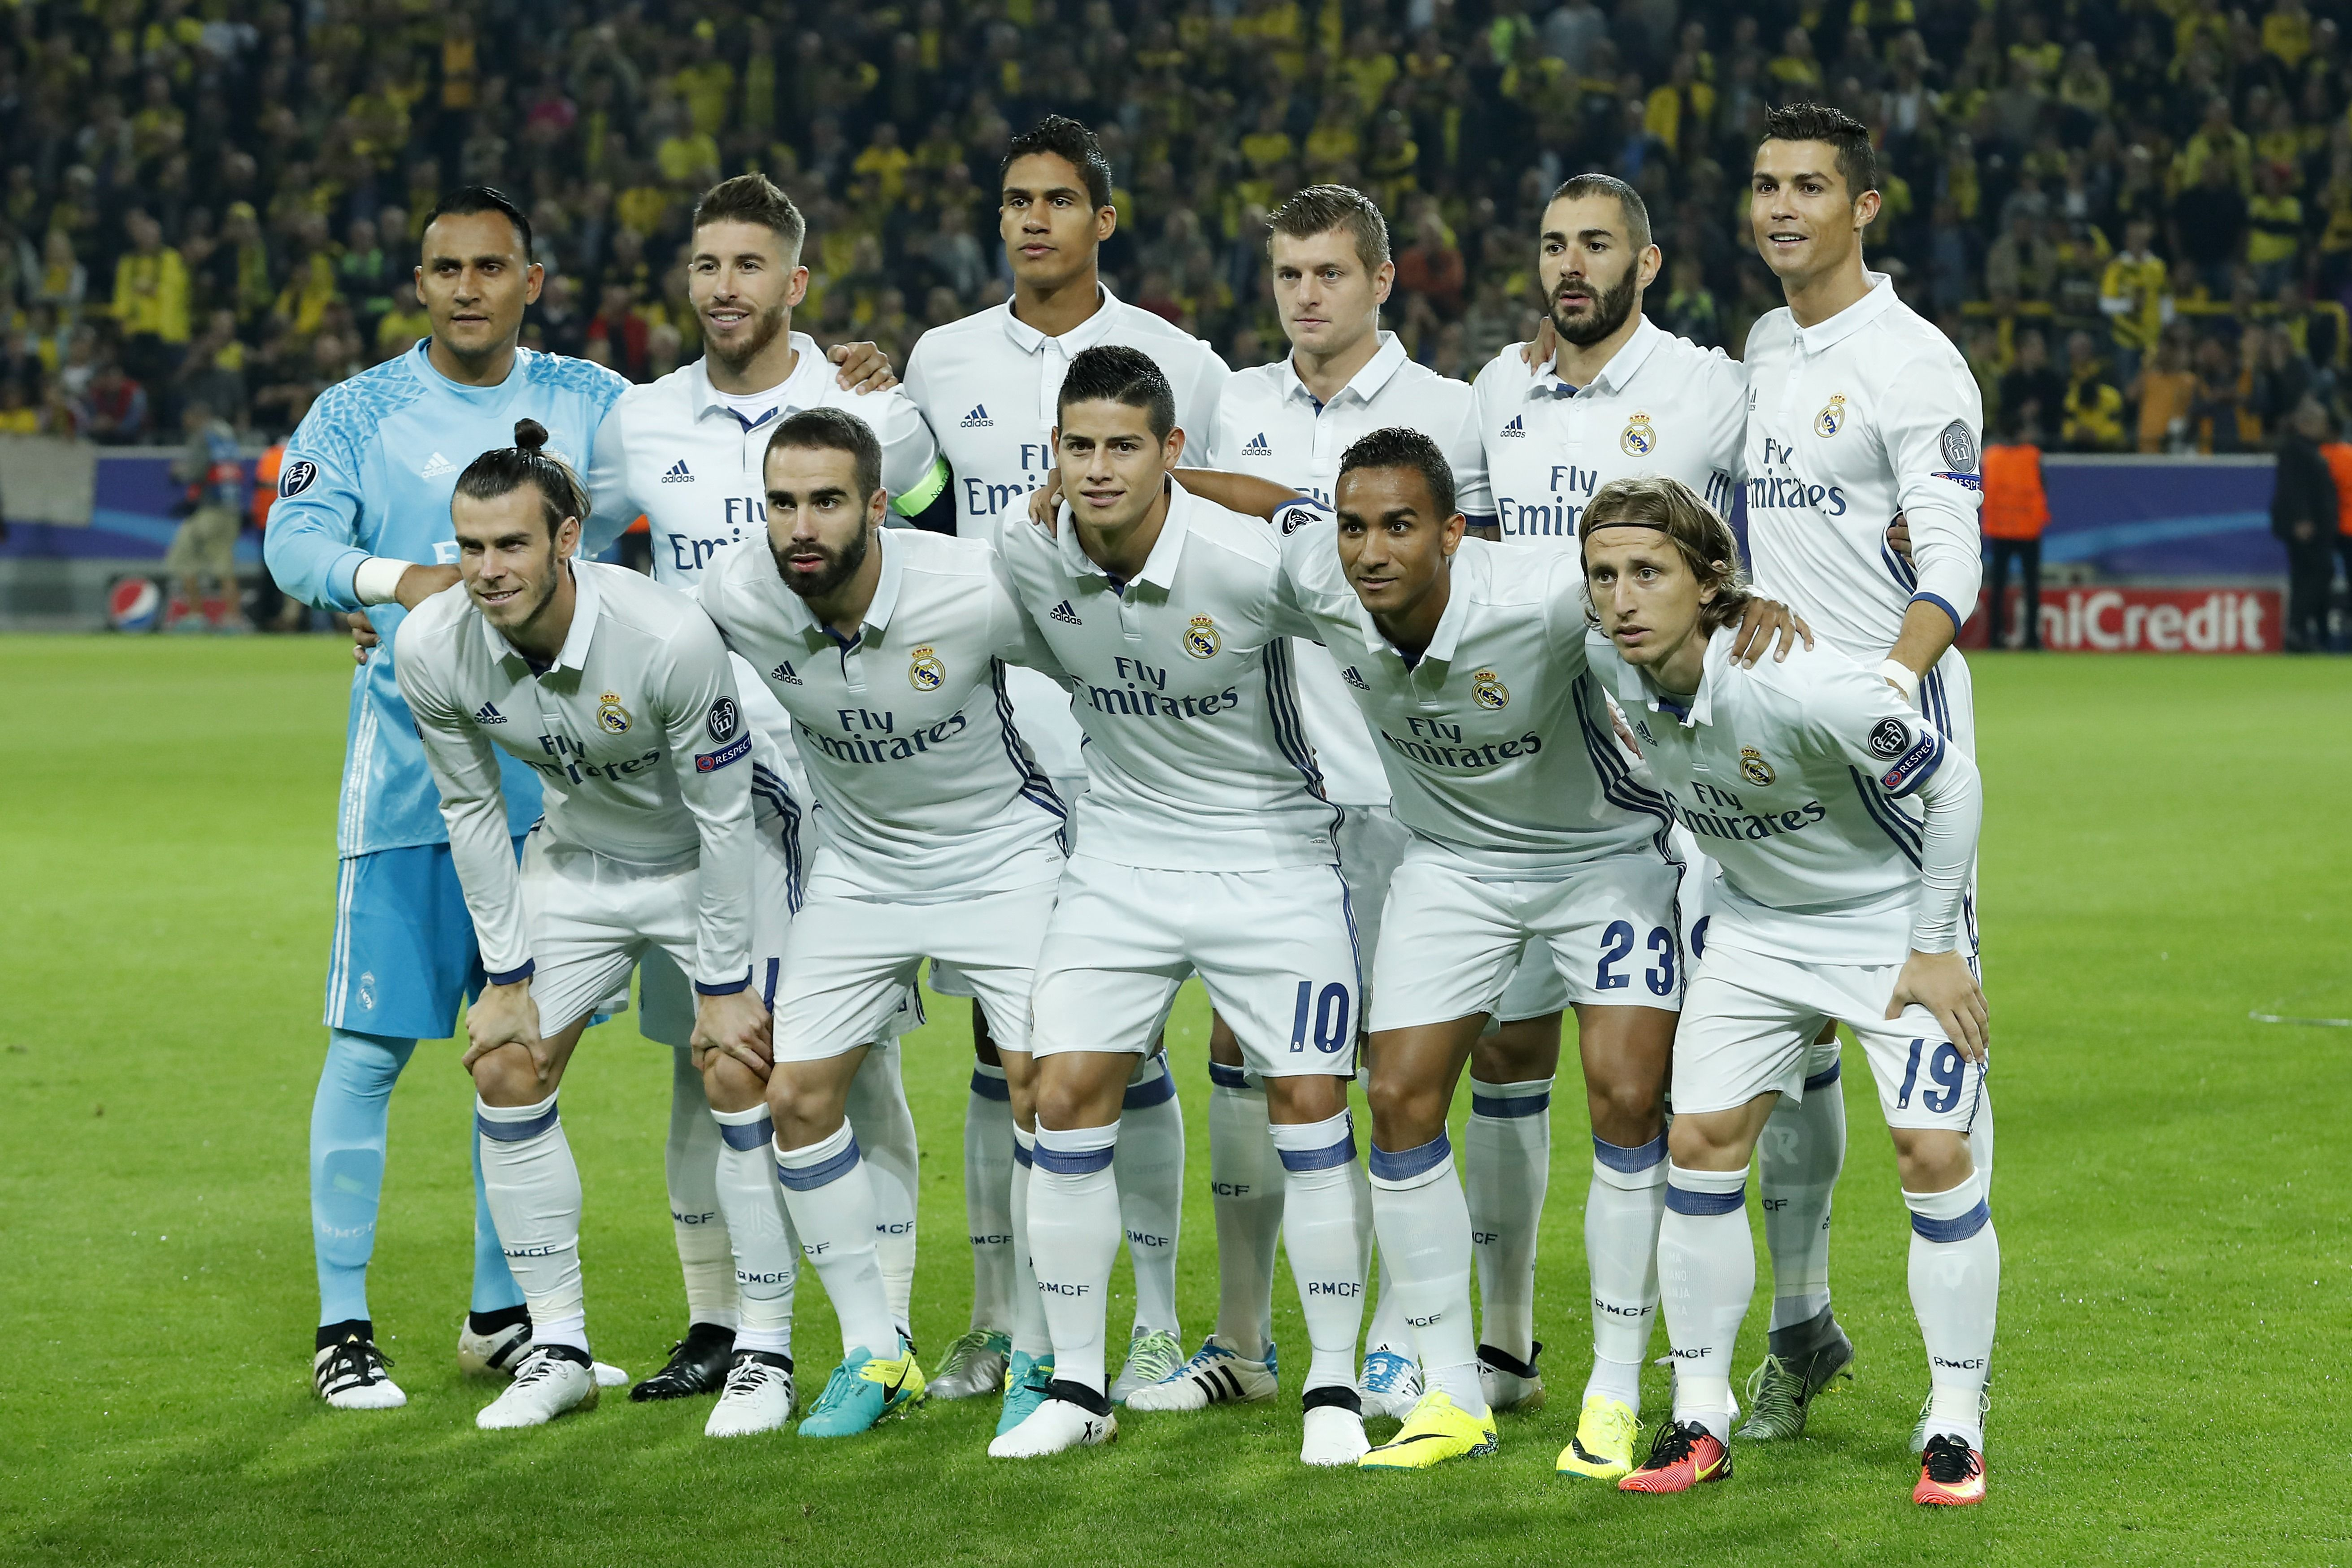 Real madrid squad 2015 2016 starting eleven players - Real madrid pictures wallpapers 2017 ...